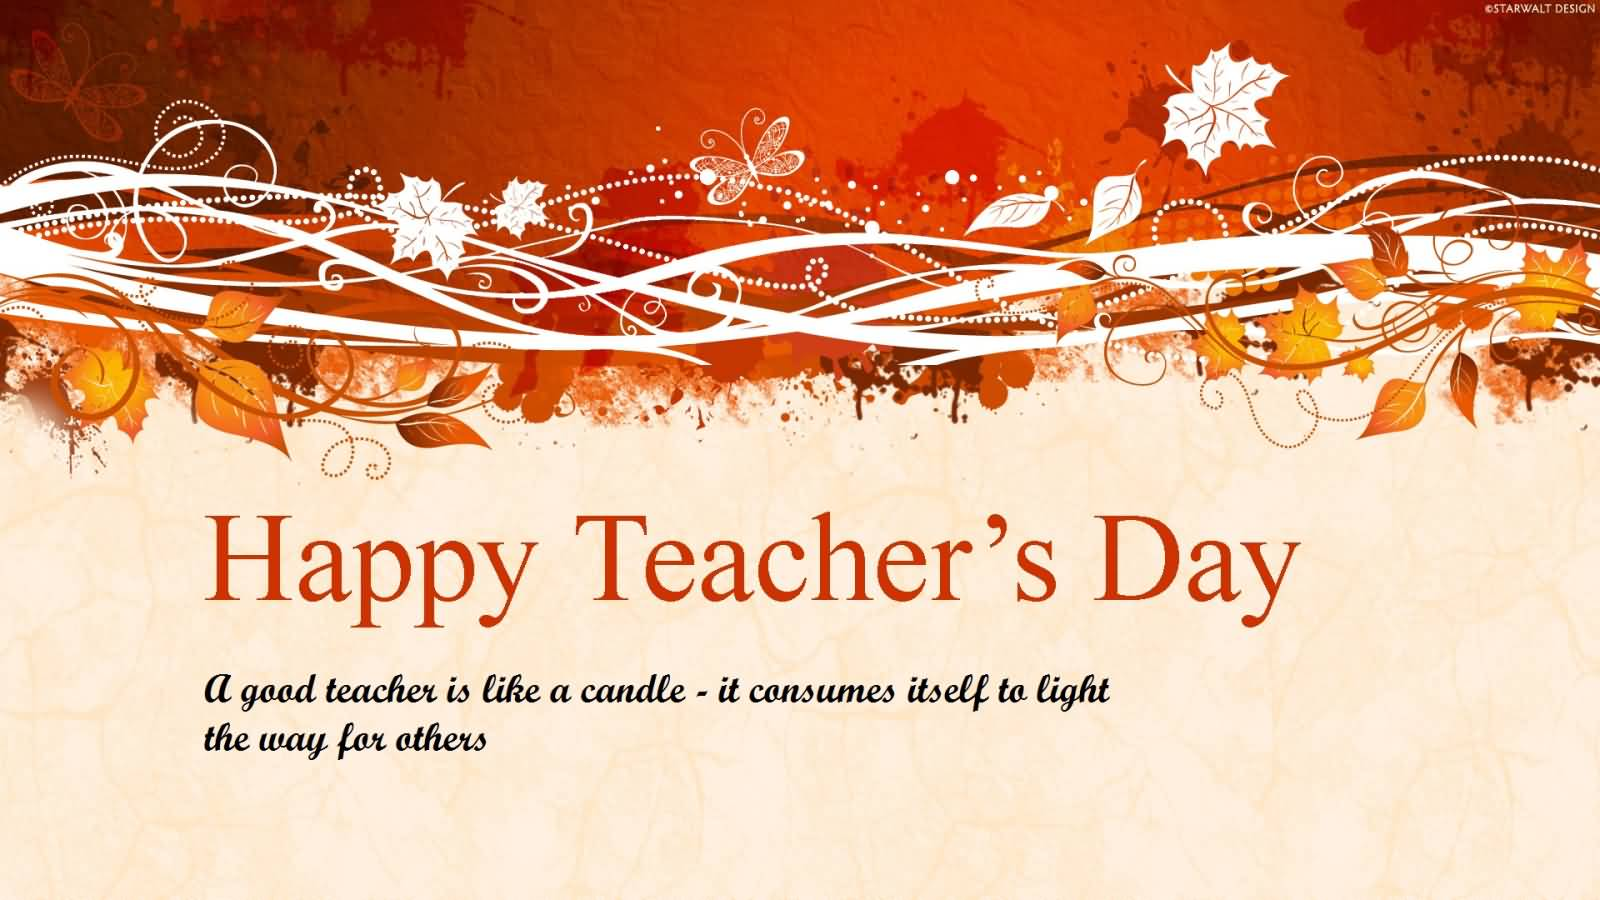 Happy Teachers Day 2019 Hd Wallpaper For Facebook